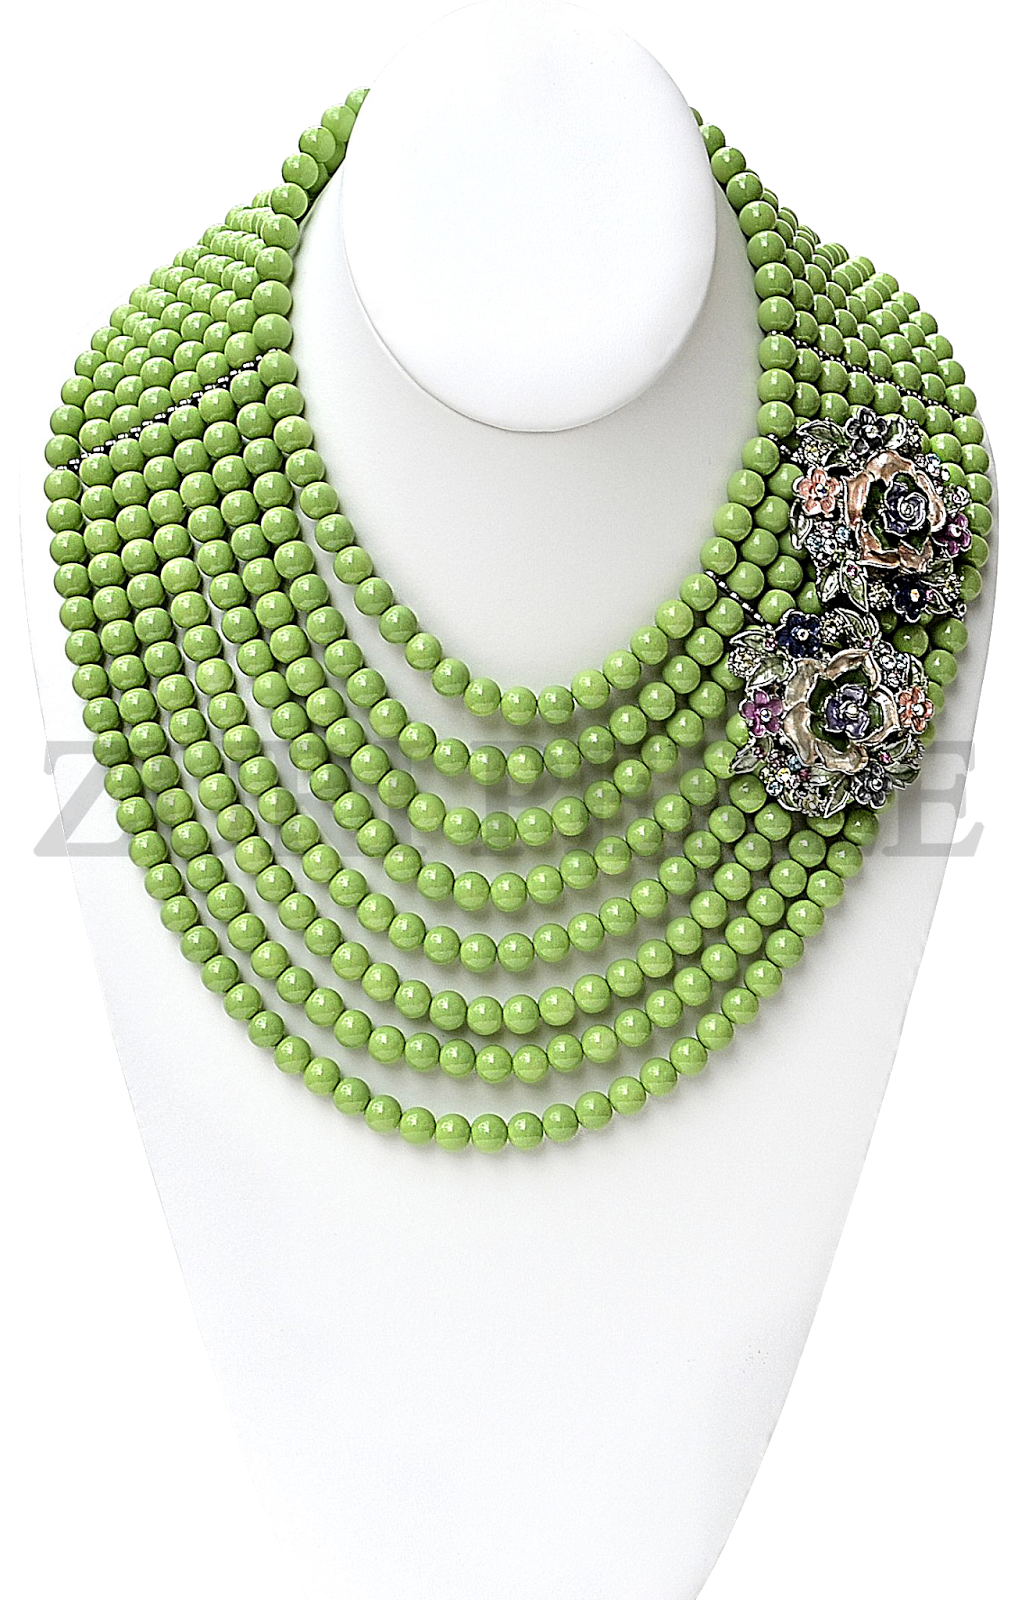 GREEN BEAD JEWELRY NECKLACE